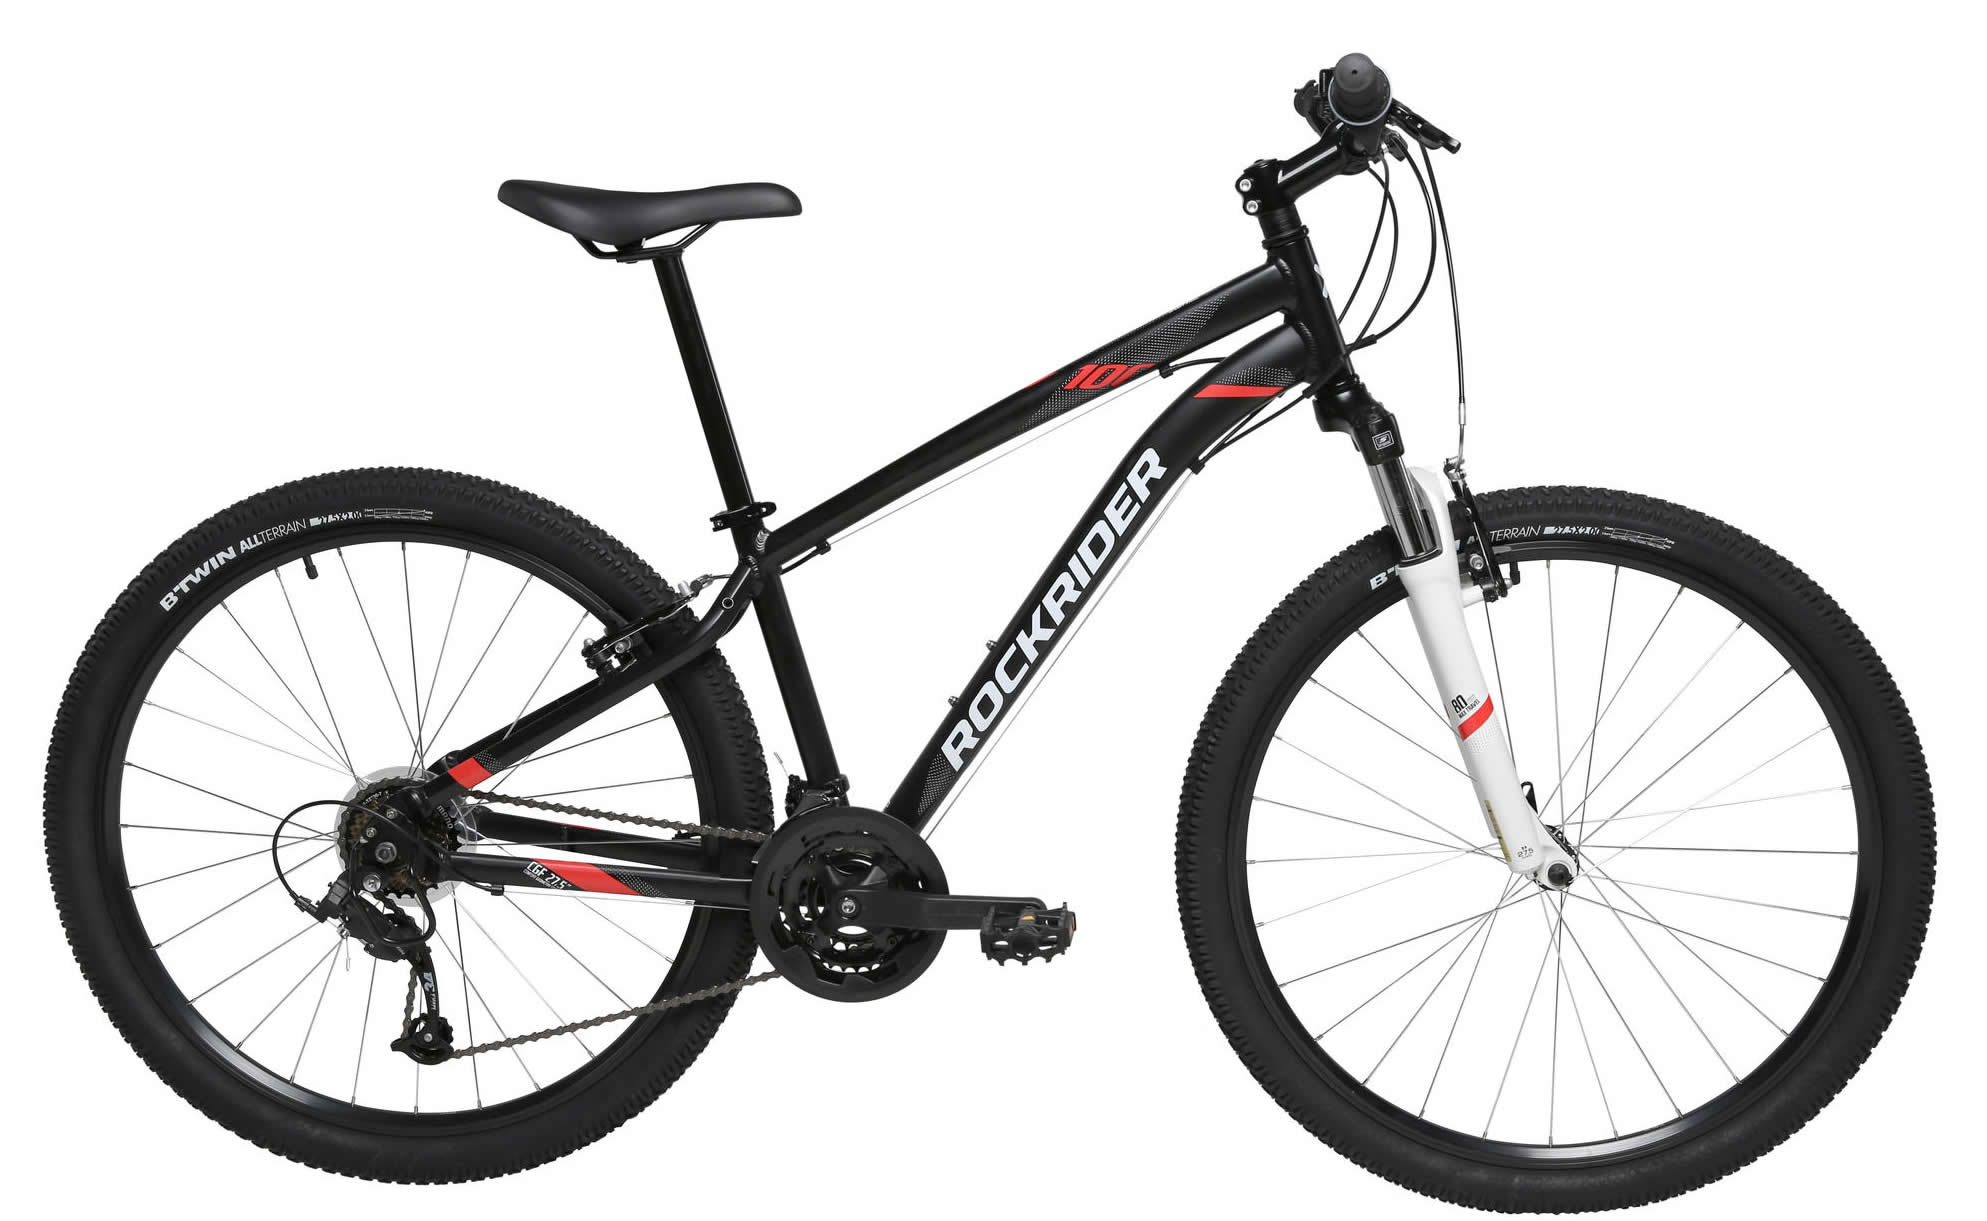 68cbacb2 8041 4a4b 8953 ccfdfc95fe49 1.9a18df1faea9001509756bdd9d314b7b 15 Best Cheap Mountain Bikes - Compare Prices & Features